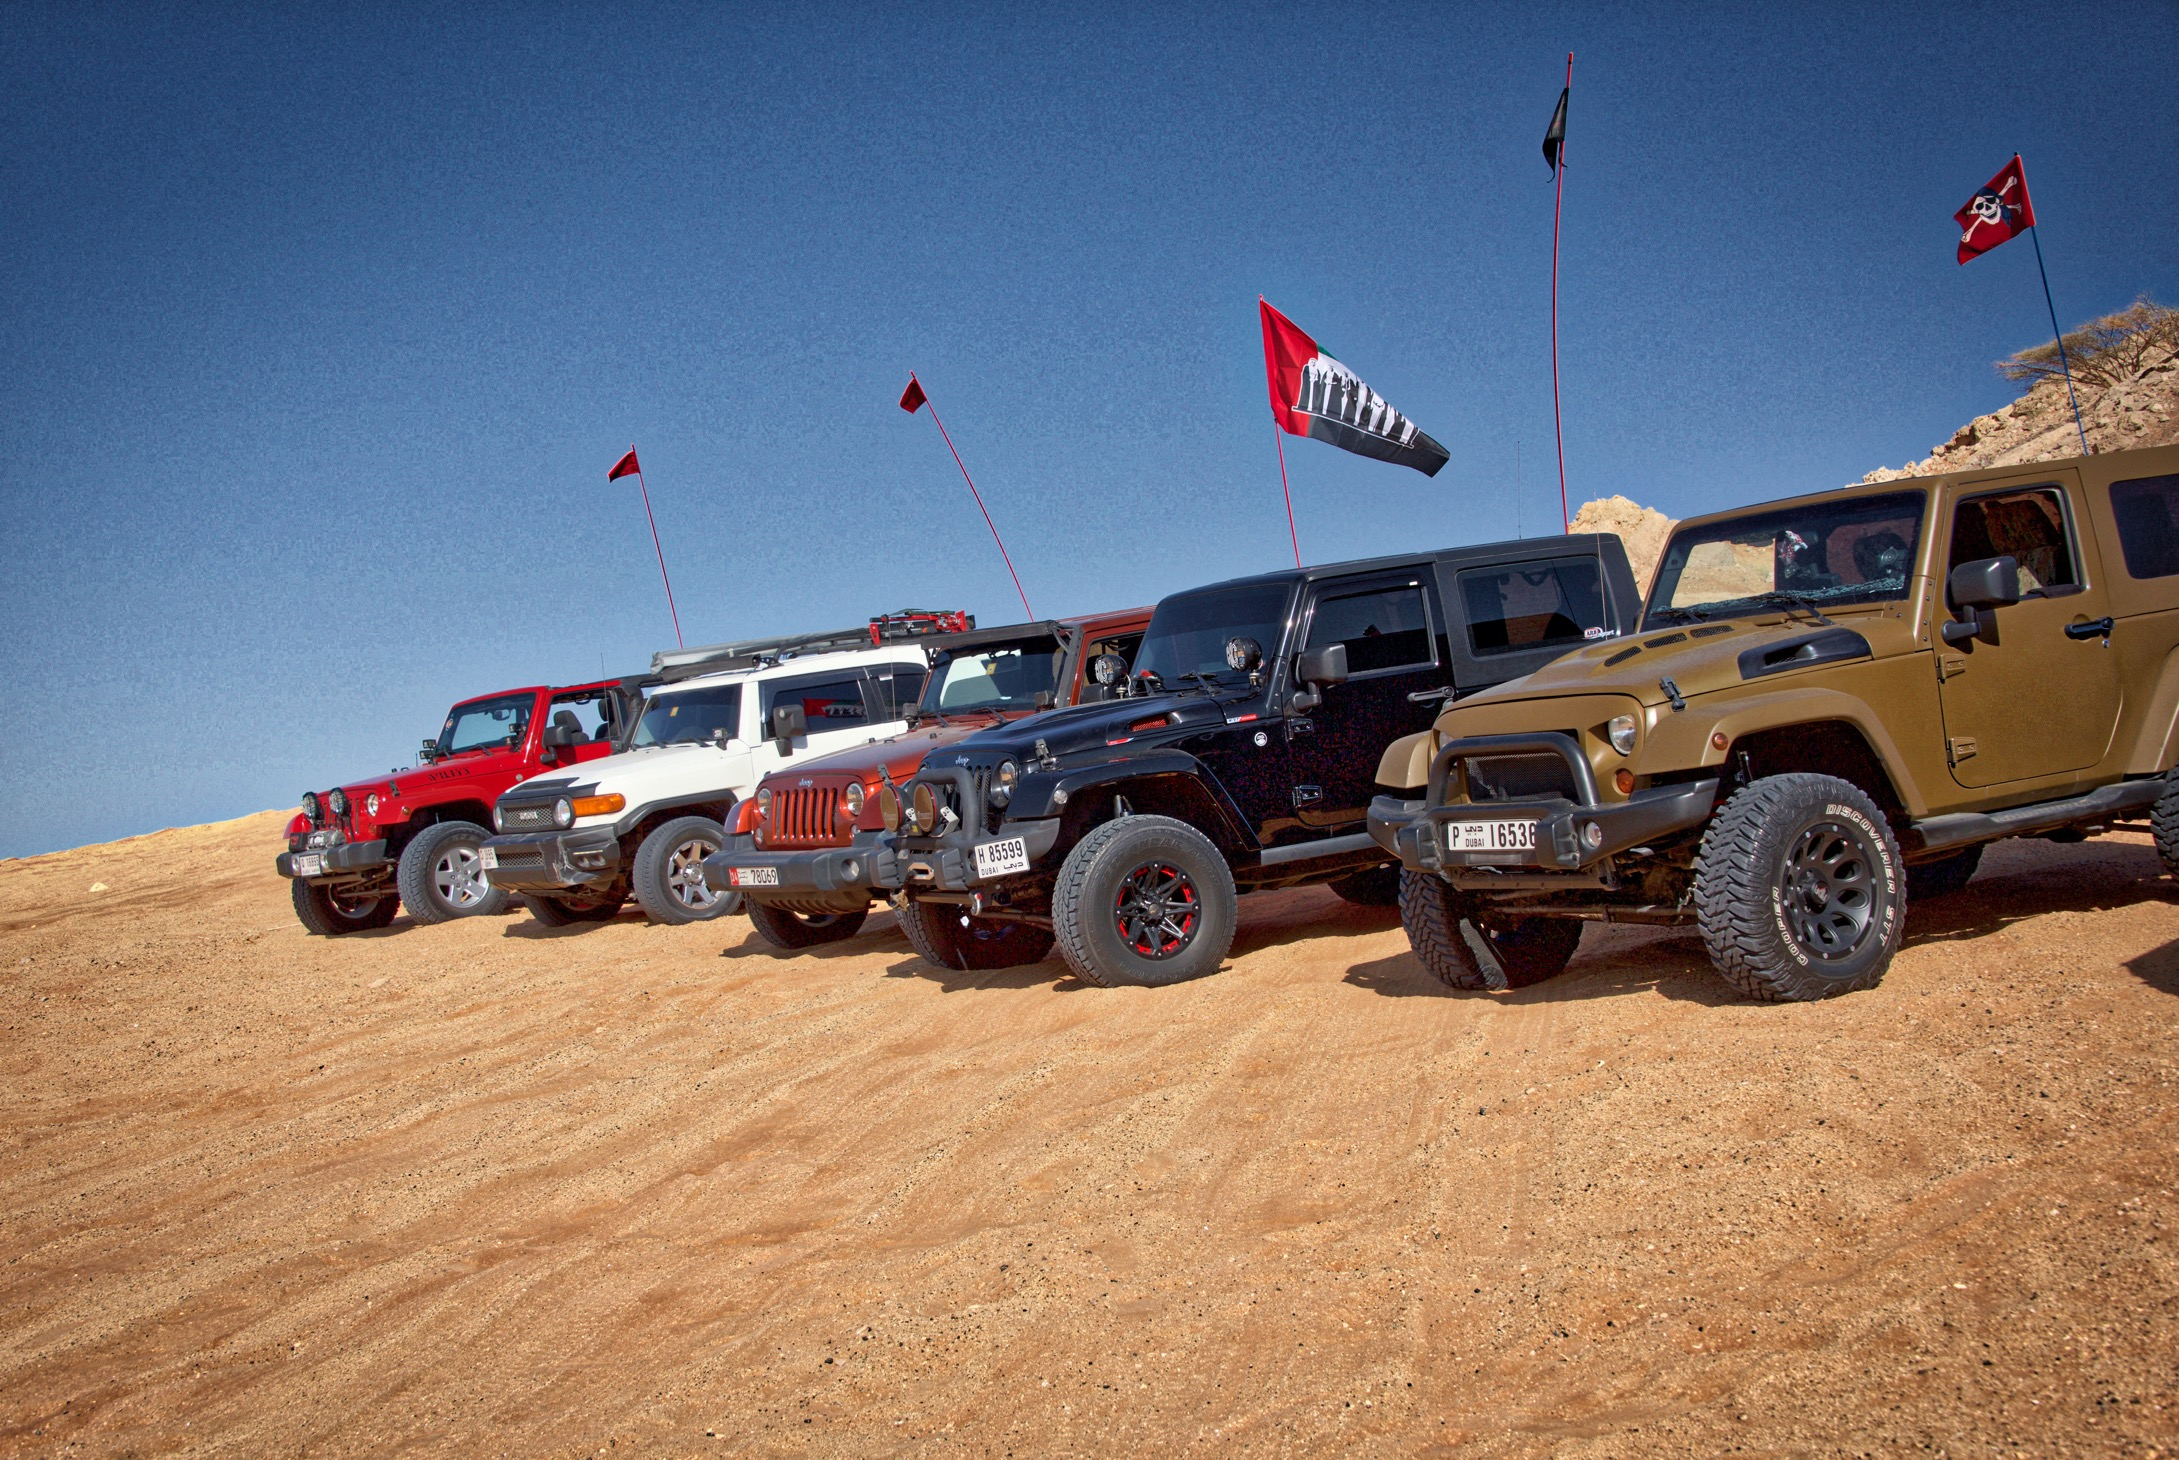 Senior offroader's vehicle lineup at Fossil Rock